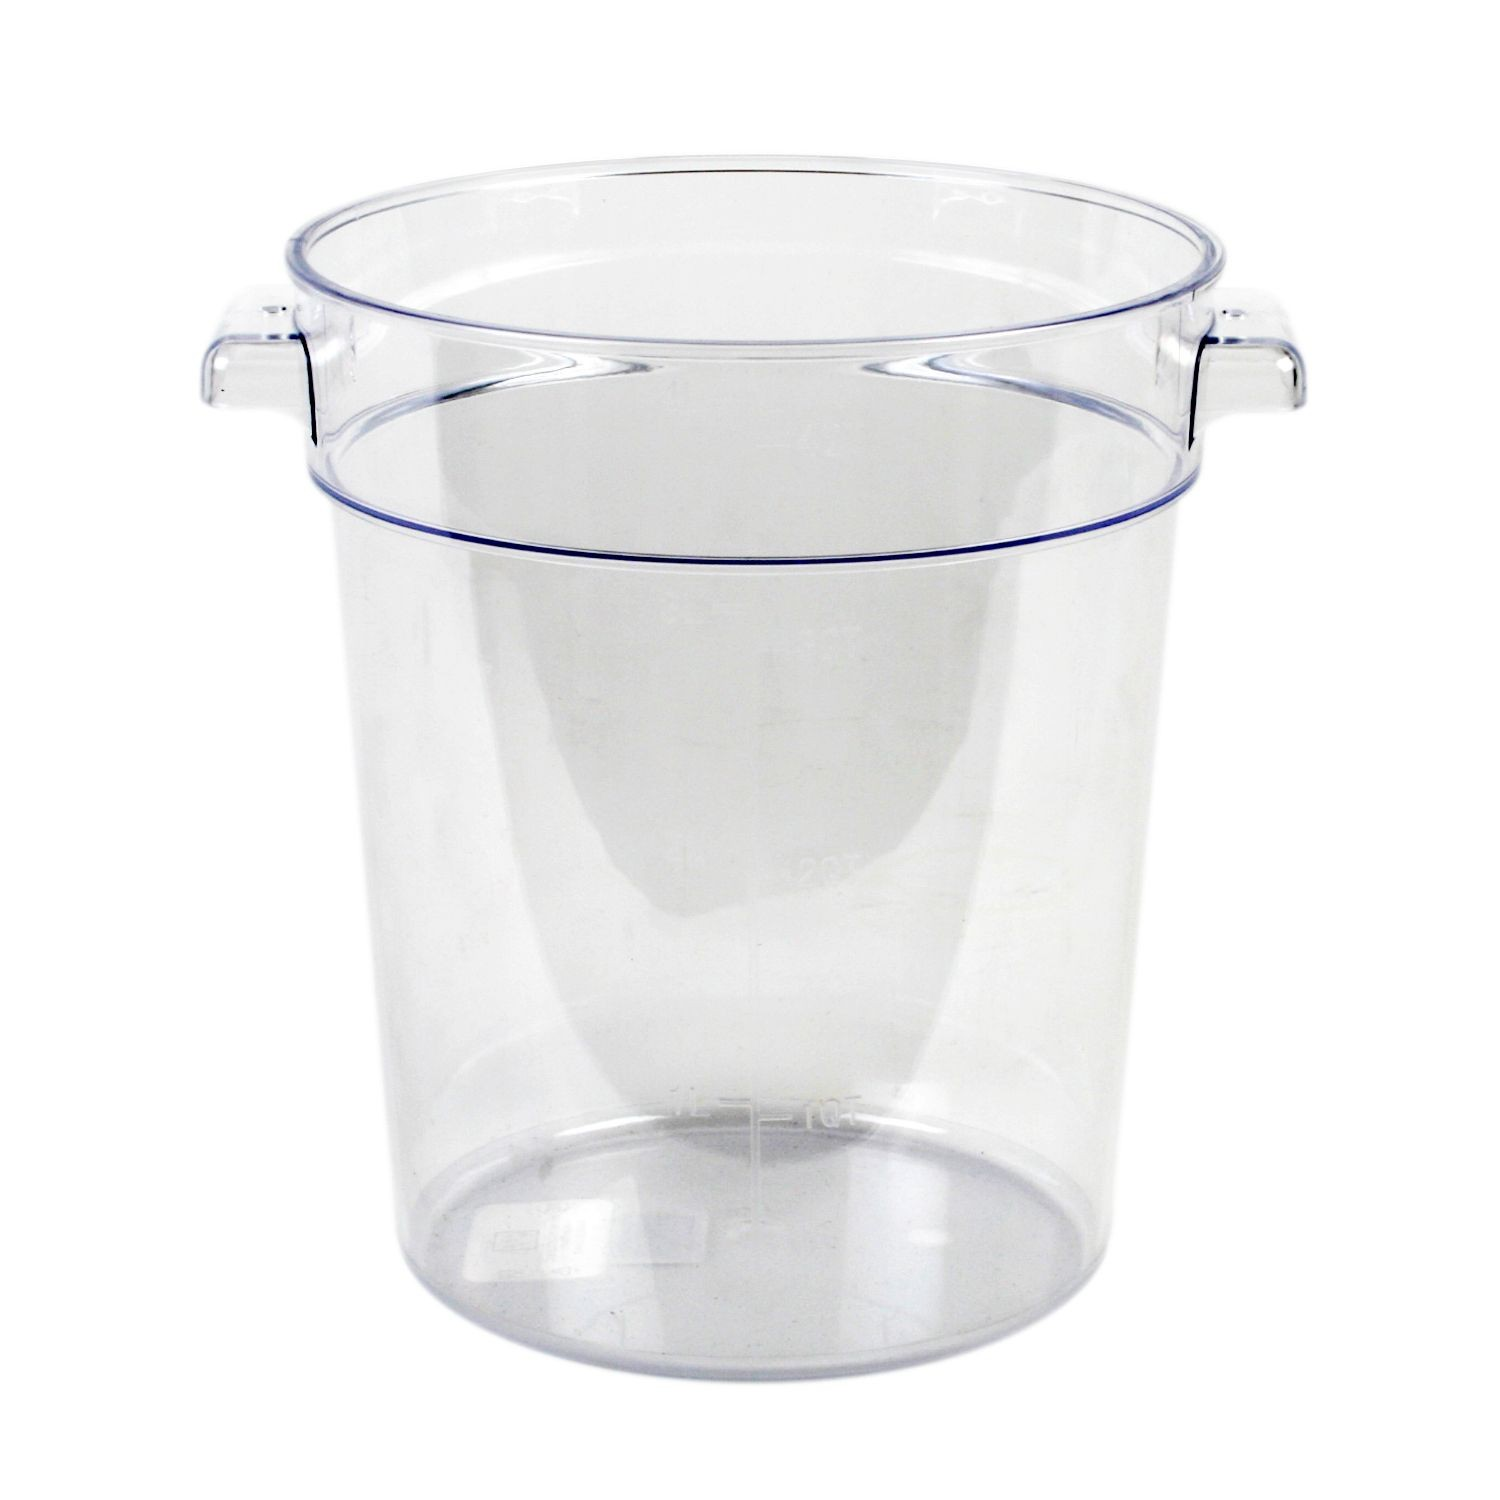 Thunder Group PLRFT004PC 4 Qt Food Storage Container - 1 doz